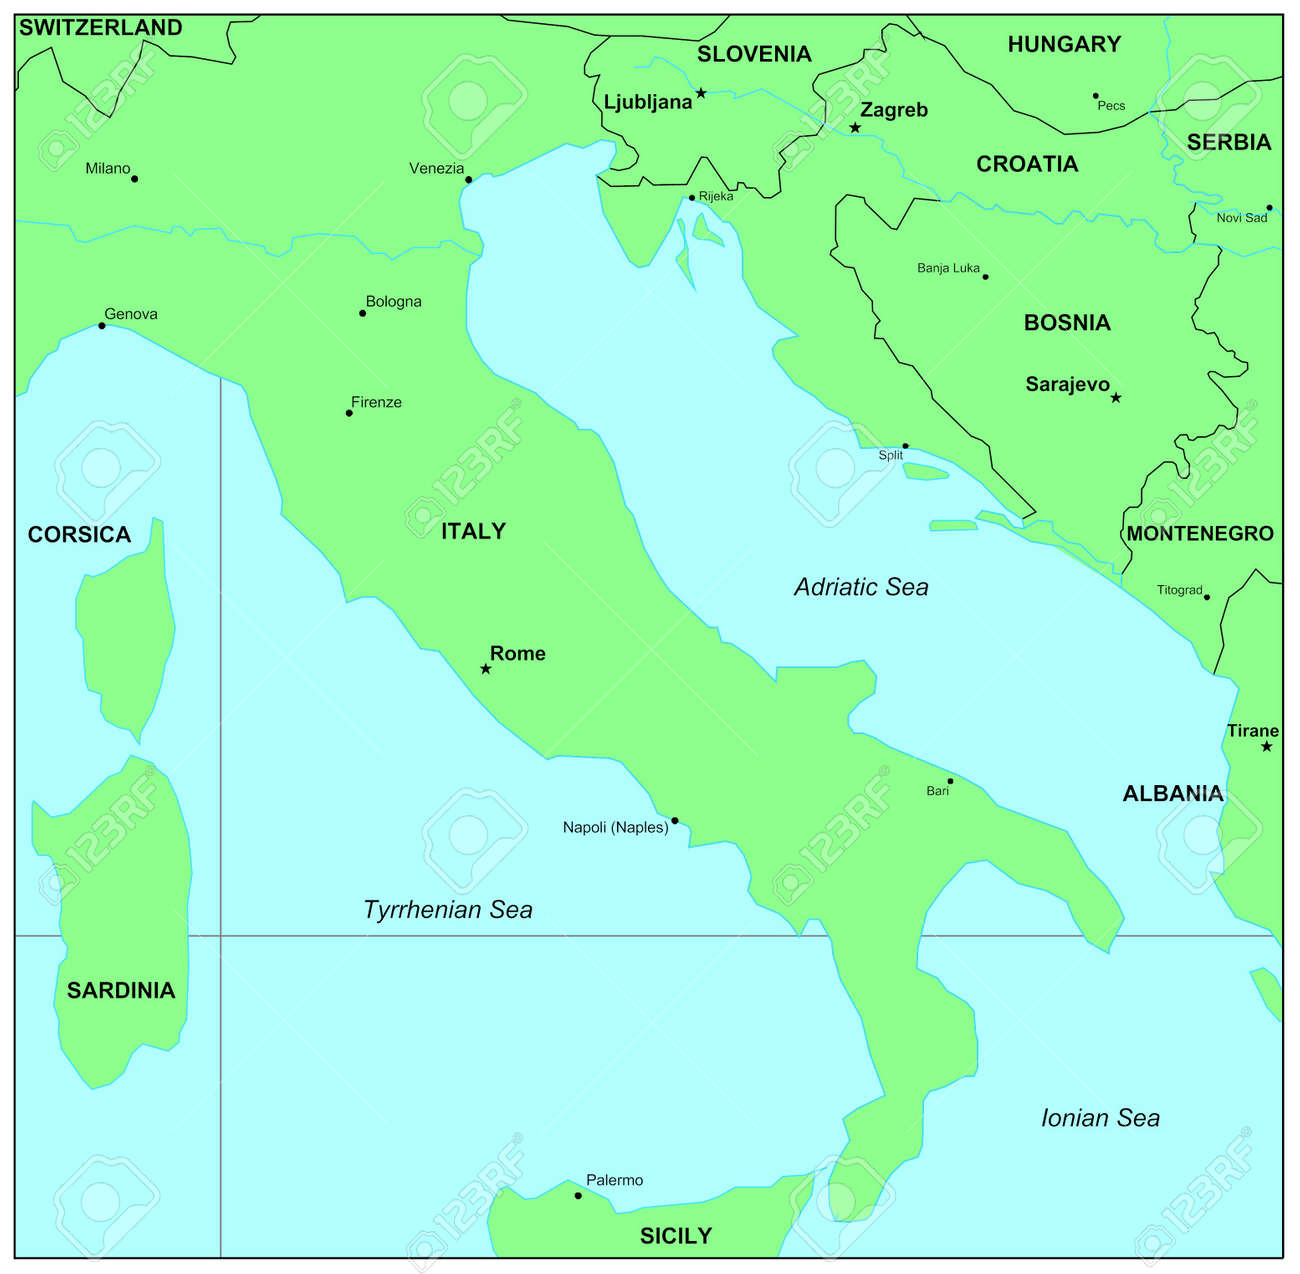 Map Of Adriatic Sea Sea Maps Series: Adriatic Sea Stock Photo, Picture And Royalty  Map Of Adriatic Sea